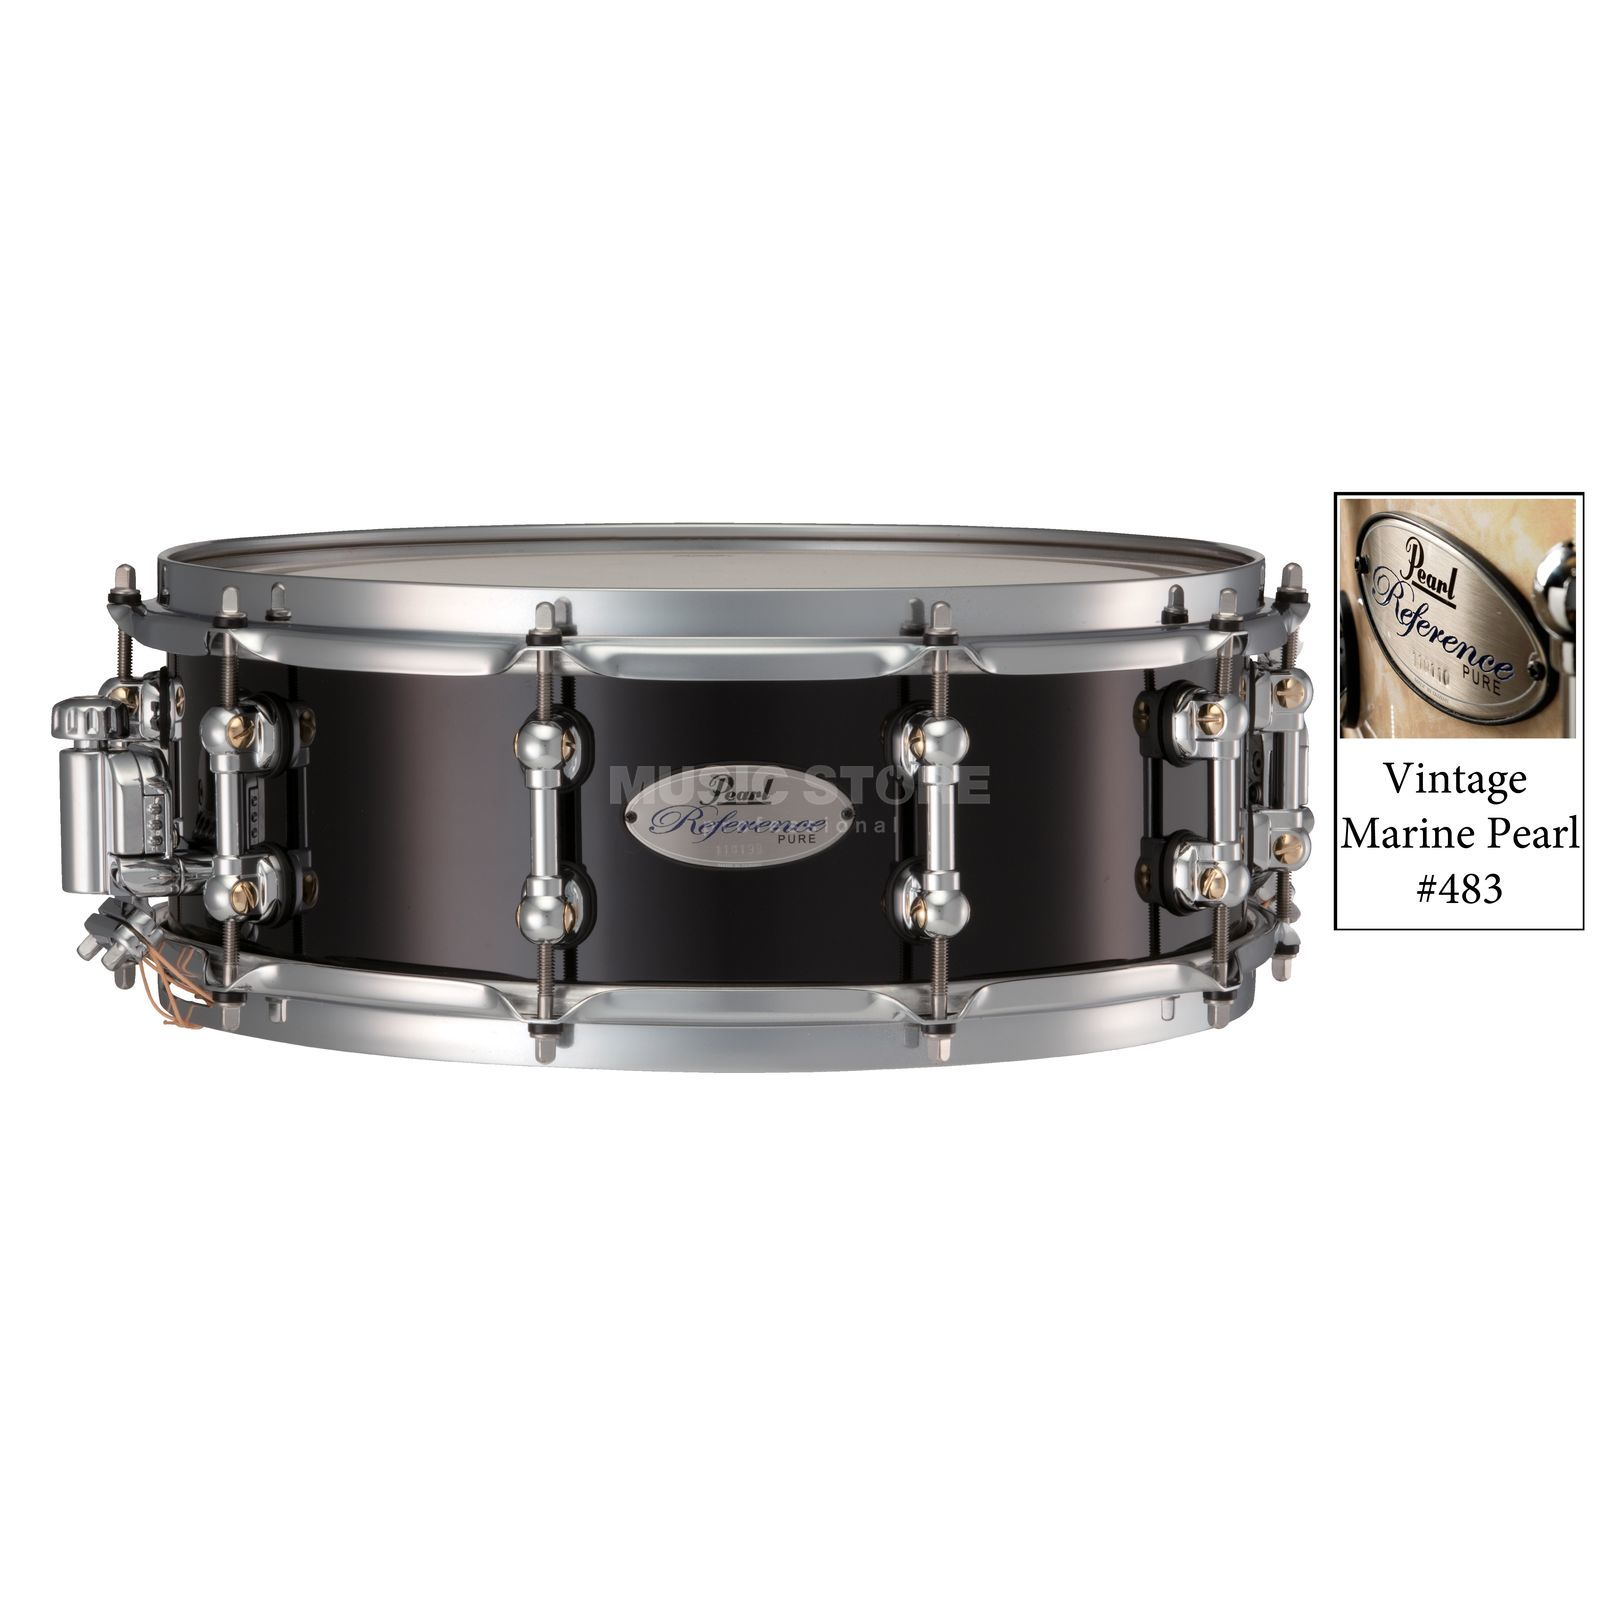 "Pearl Reference Pure Snare, 14""x5"", Vintage Marine Pearl #483 Produktbild"